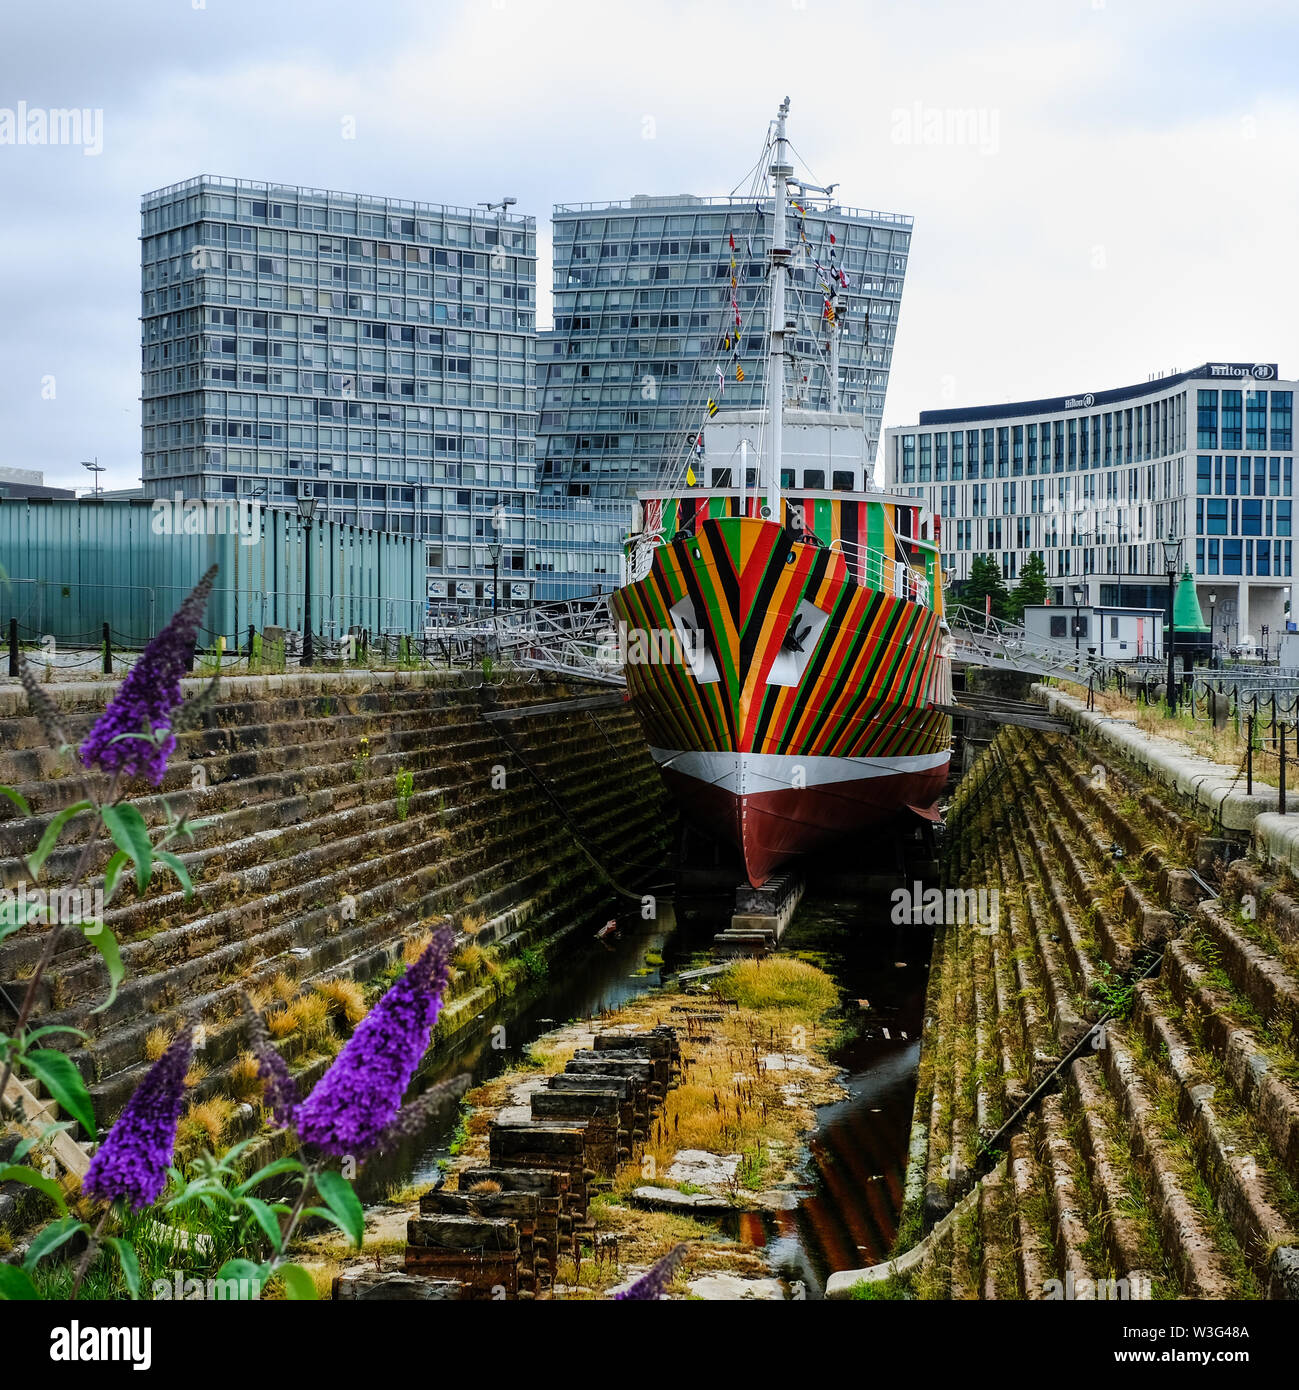 'Dazzle Ship' in Canning Graving dock, Liverpool, UK by Venezuelan artist Carlos Cruz-Diez. He painted the pilot ship 'Edmund Gardner' in the dazzle s - Stock Image